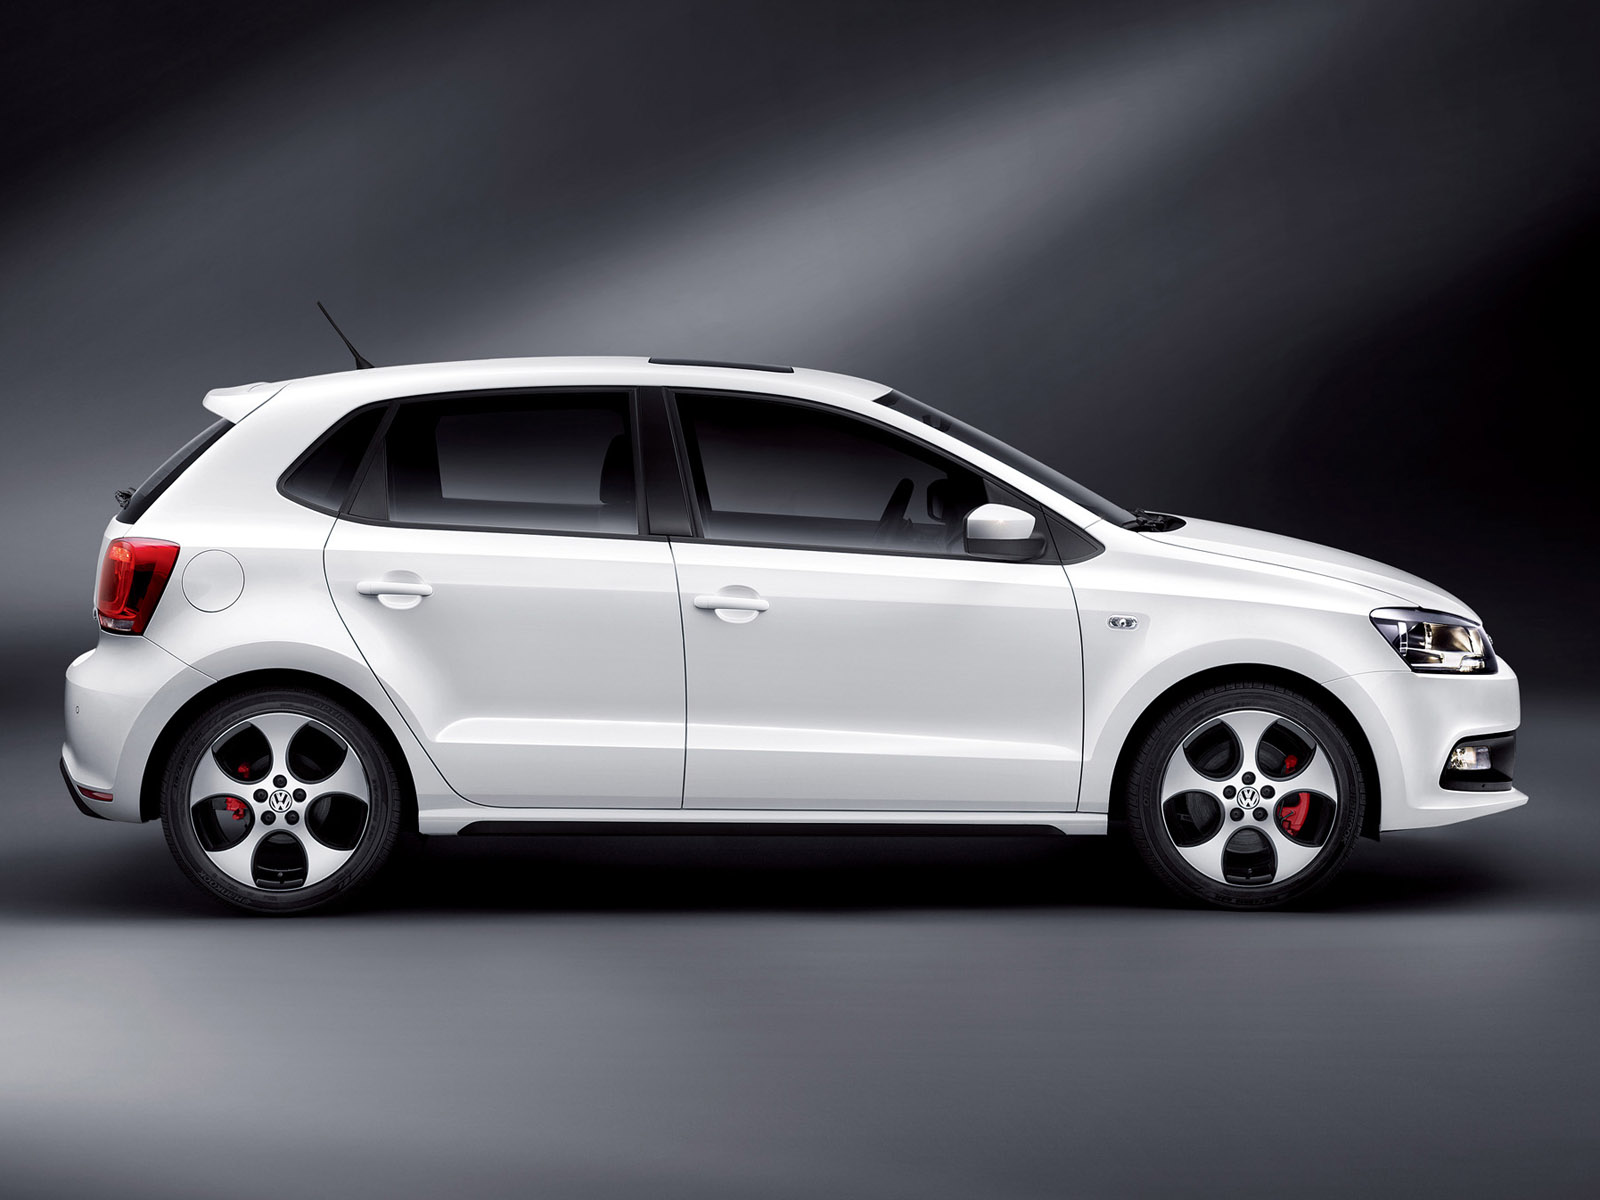 Volkswagen Polo Gti 2012 Review Amazing Pictures And